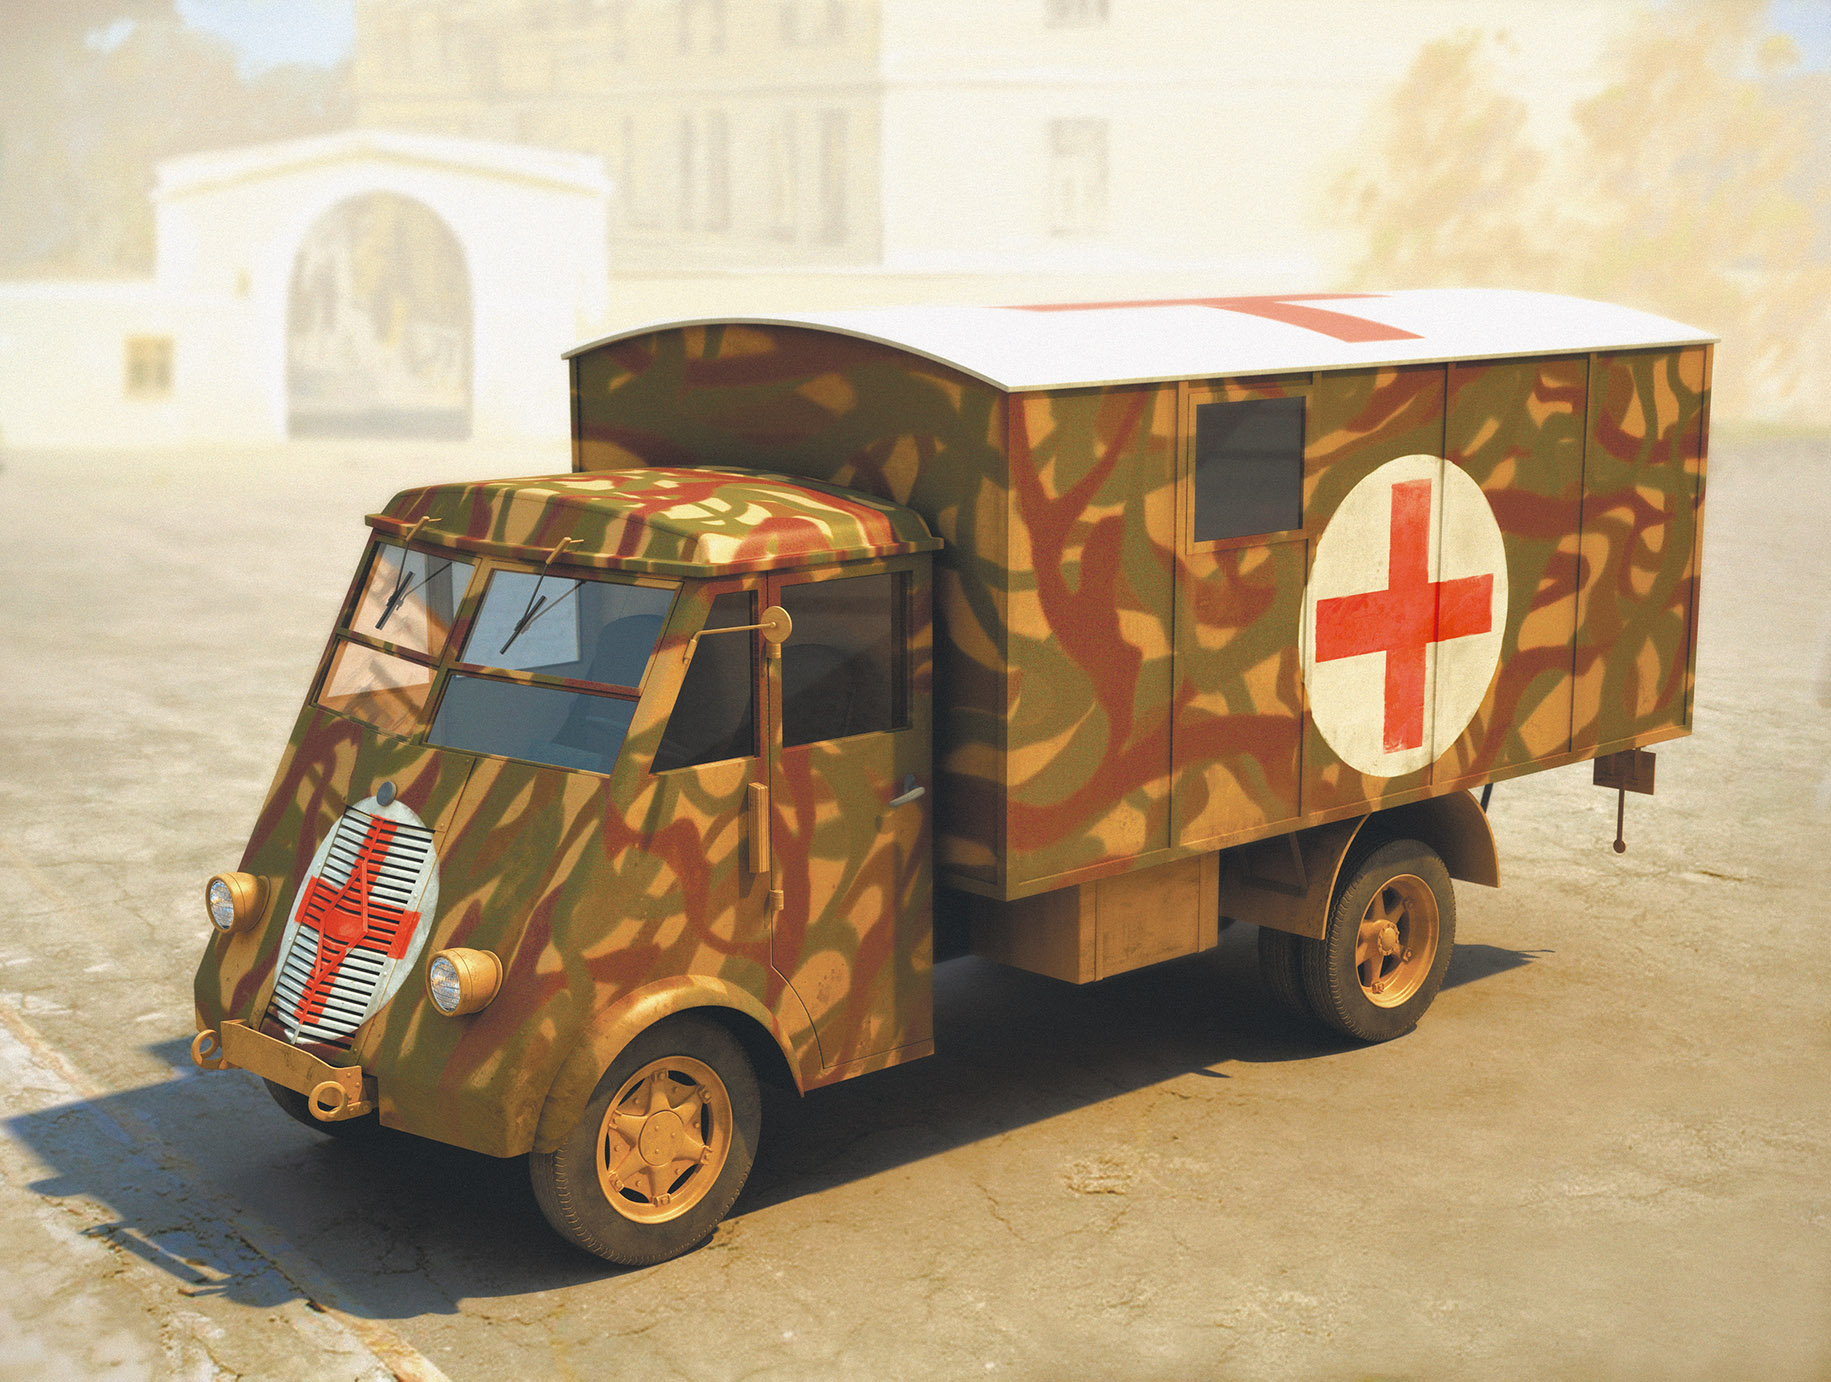 ICM Lastkraftwagen 3,5 t AHN with Shelter, WWII German Ambulance Truck